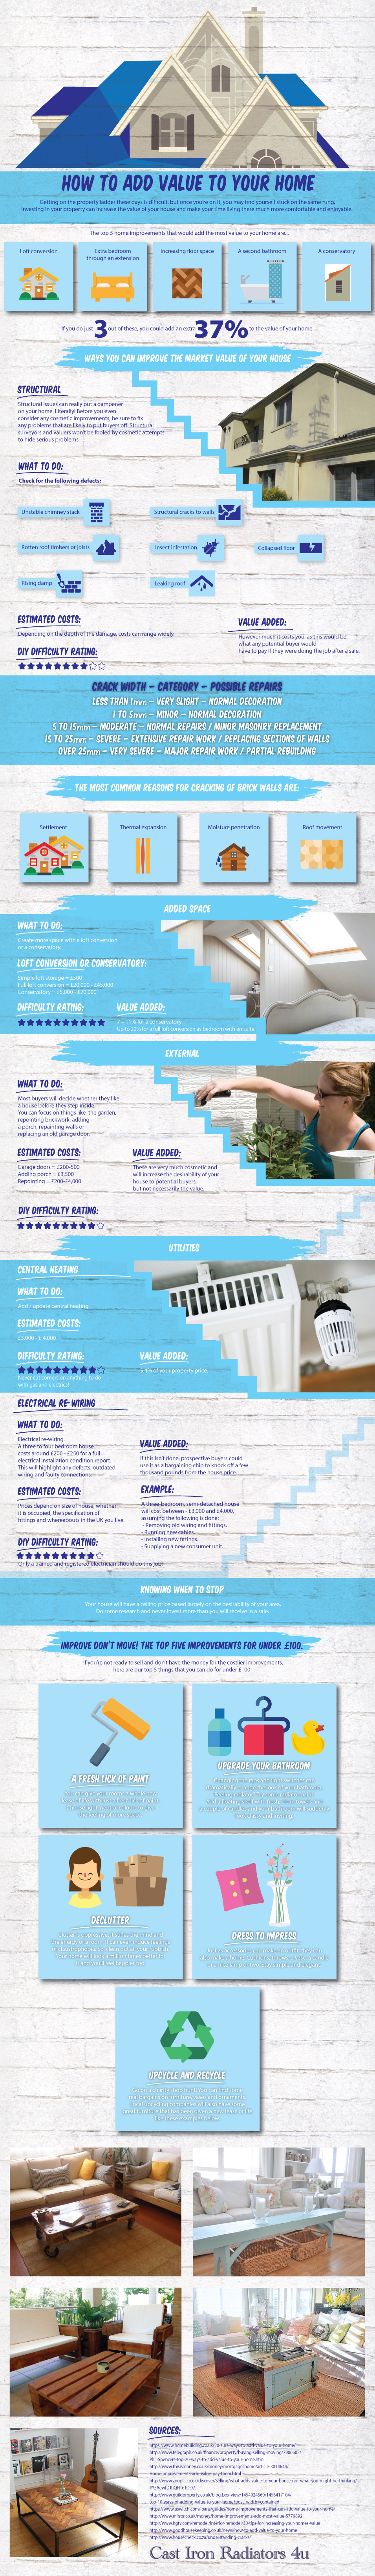 Adding Value To Your Home by Cast Iron Radiators 4u